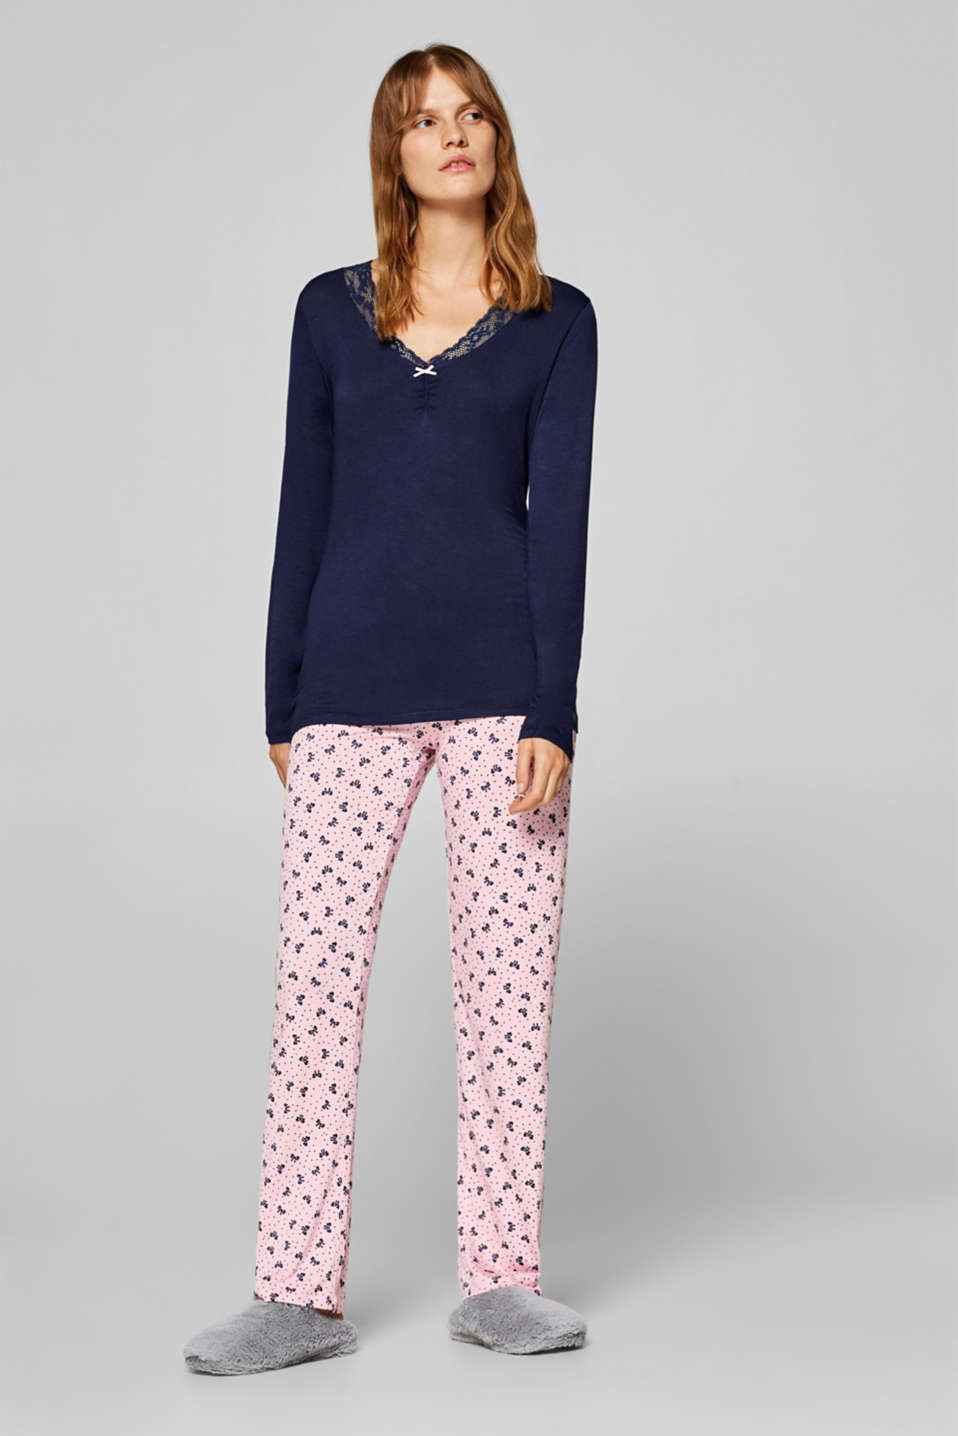 Esprit - Jersey pyjamas with stretch for comfort